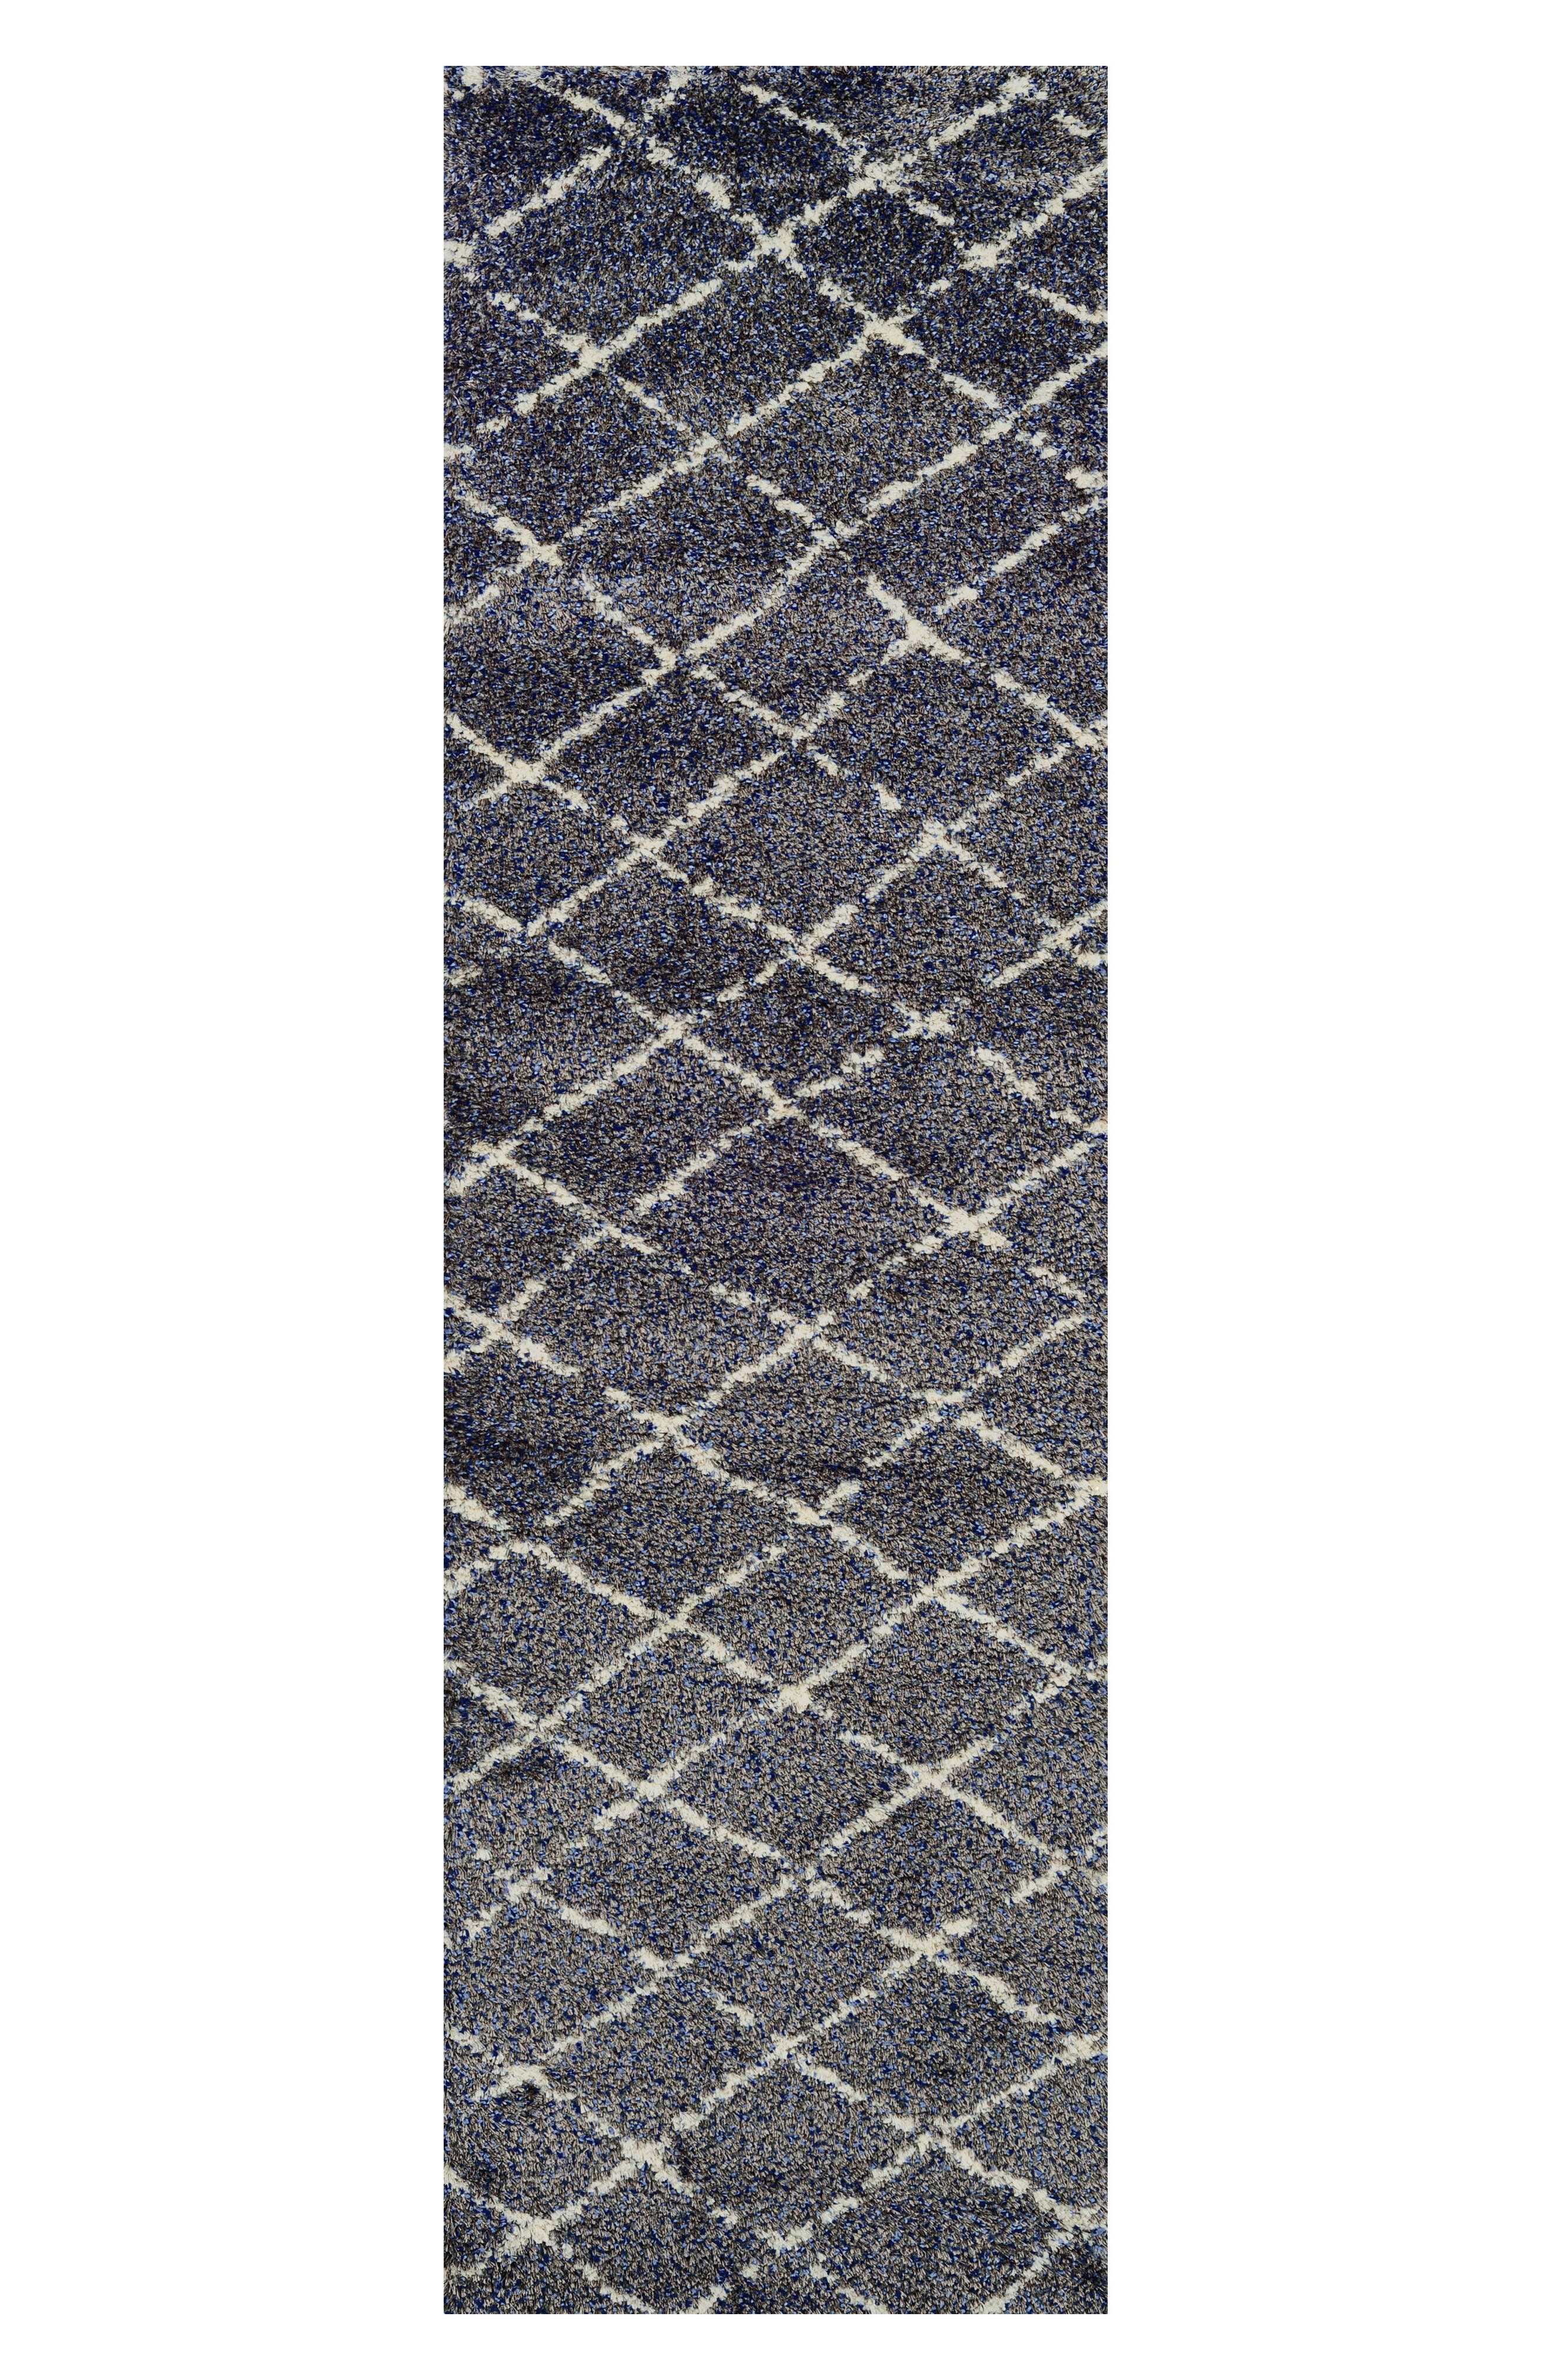 Bromley Gio Area Rug,                             Alternate thumbnail 2, color,                             NAVY/GREY